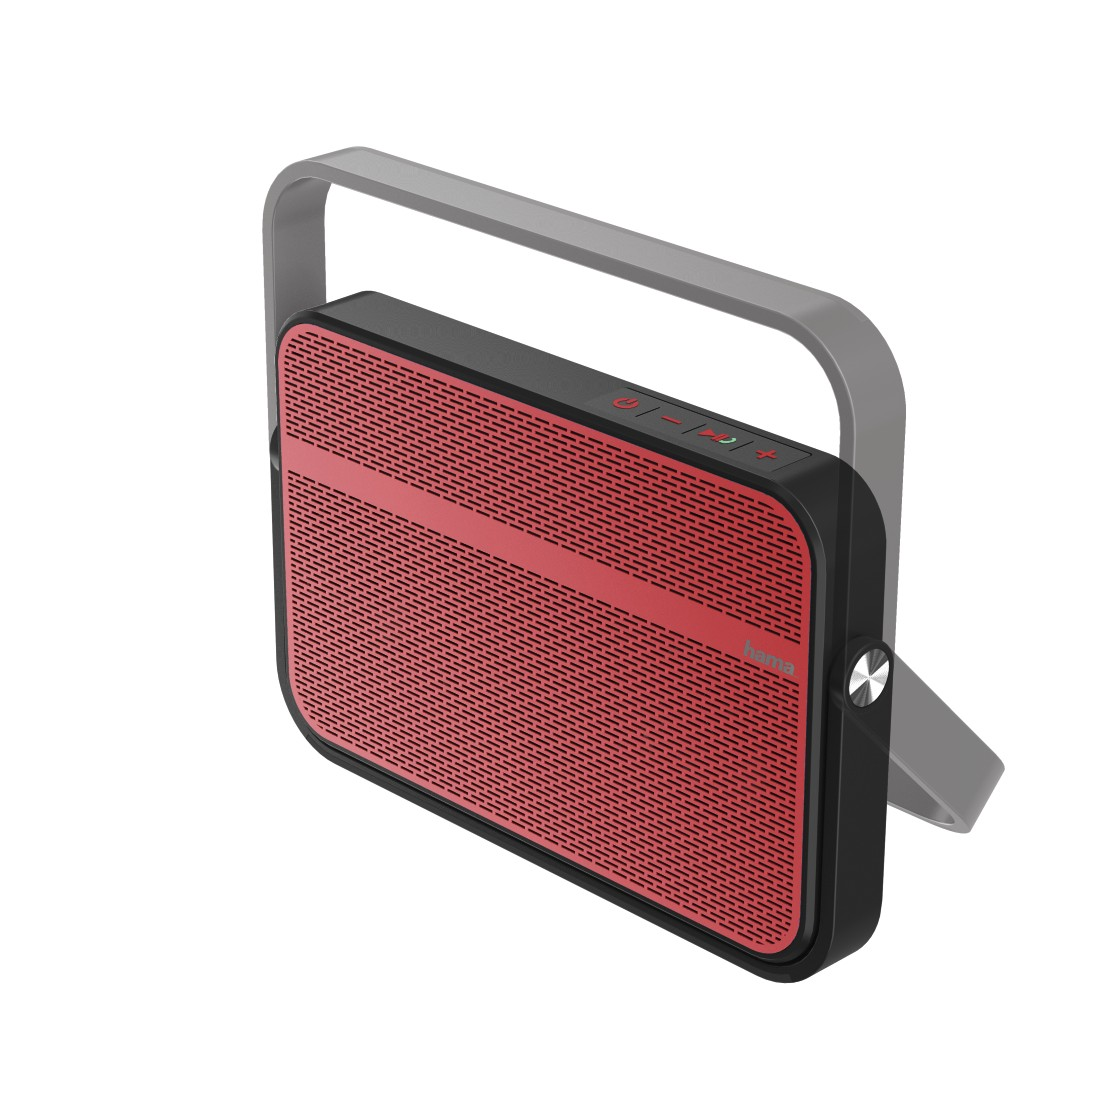 abx3 High-Res Image 3 - Hama, Blade Mobile Bluetooth Speaker, red/black